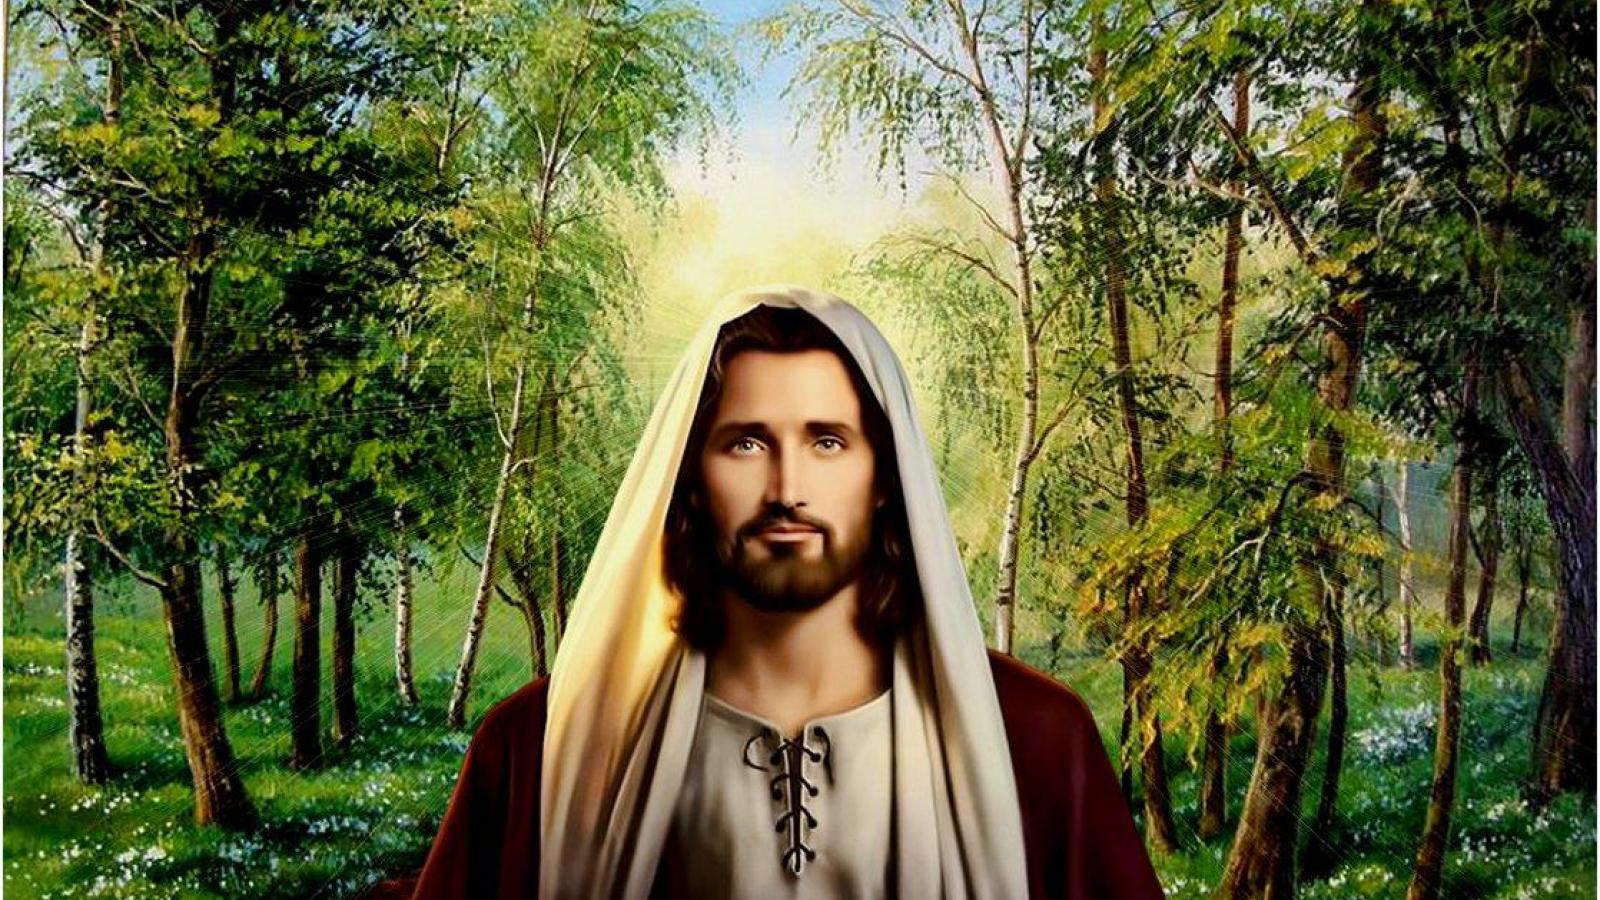 1600x900 Jesus Picture Wallpaper Group (44+), HD Wallpapers